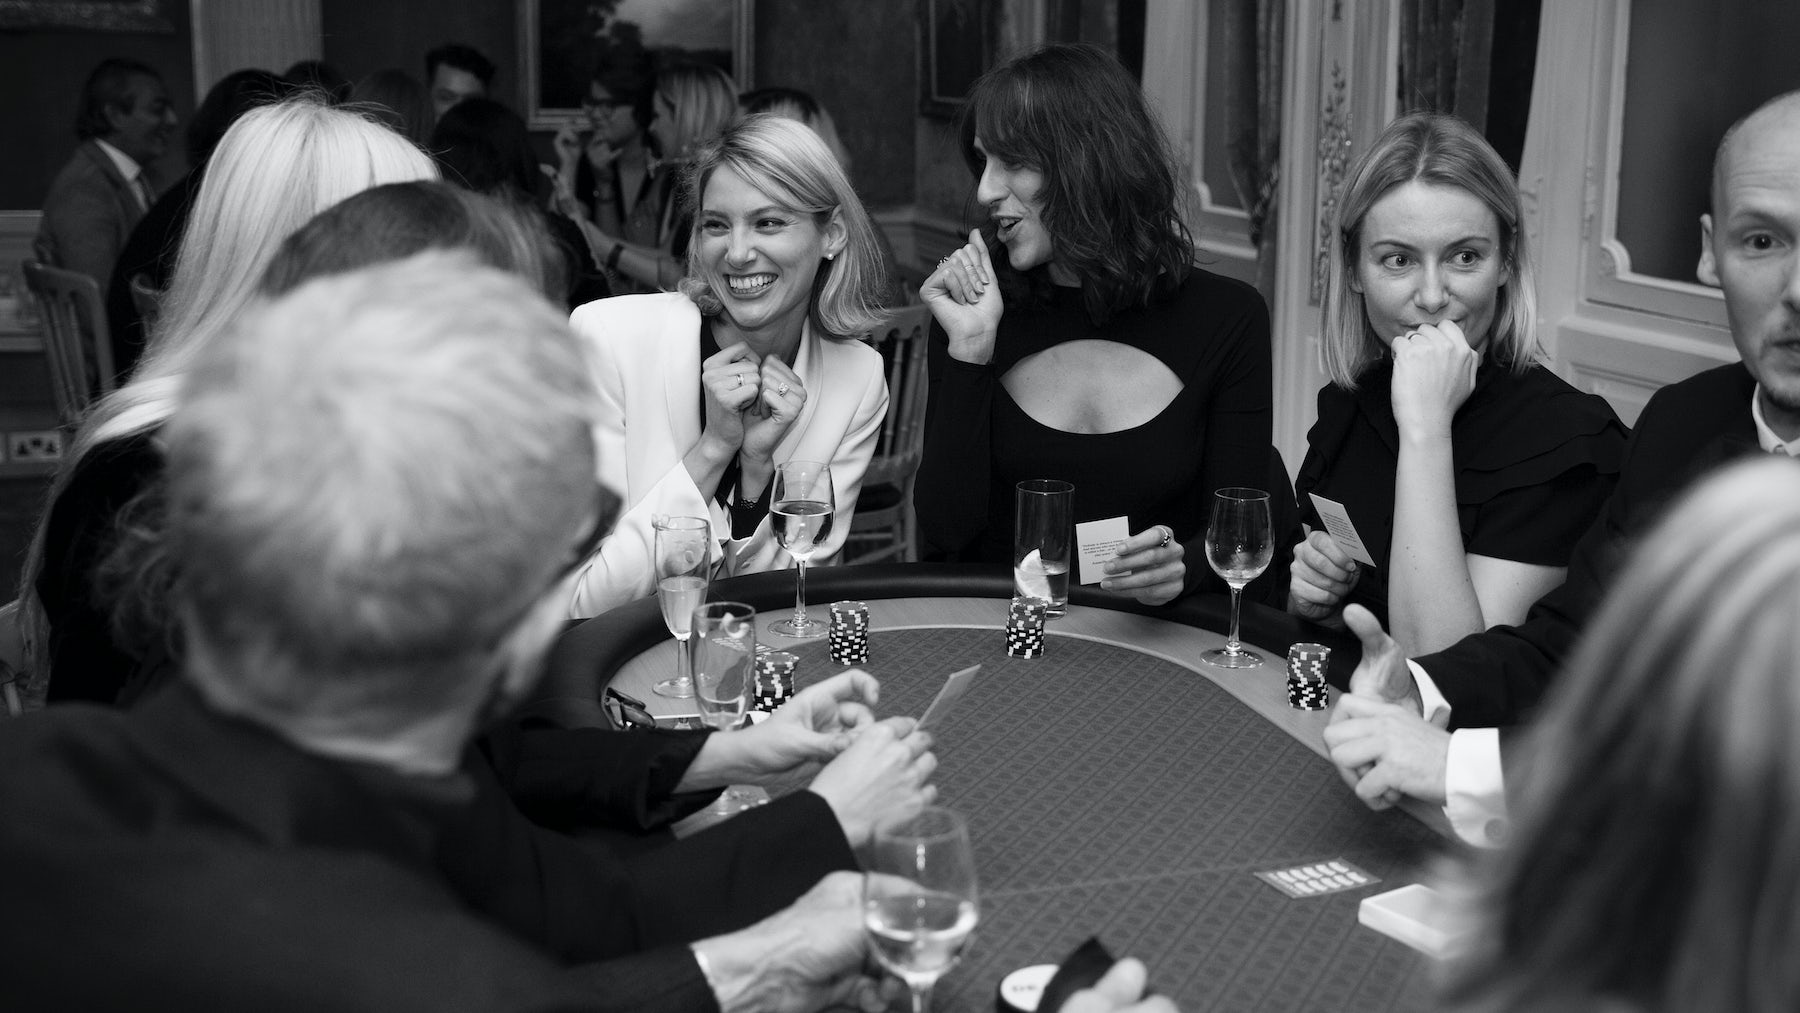 A Gentlewoman Club cards night at Savile Club with Browns Fashion, hosted by editor-in-chief Penny Martin (second from right) | Photo: Adam Slama